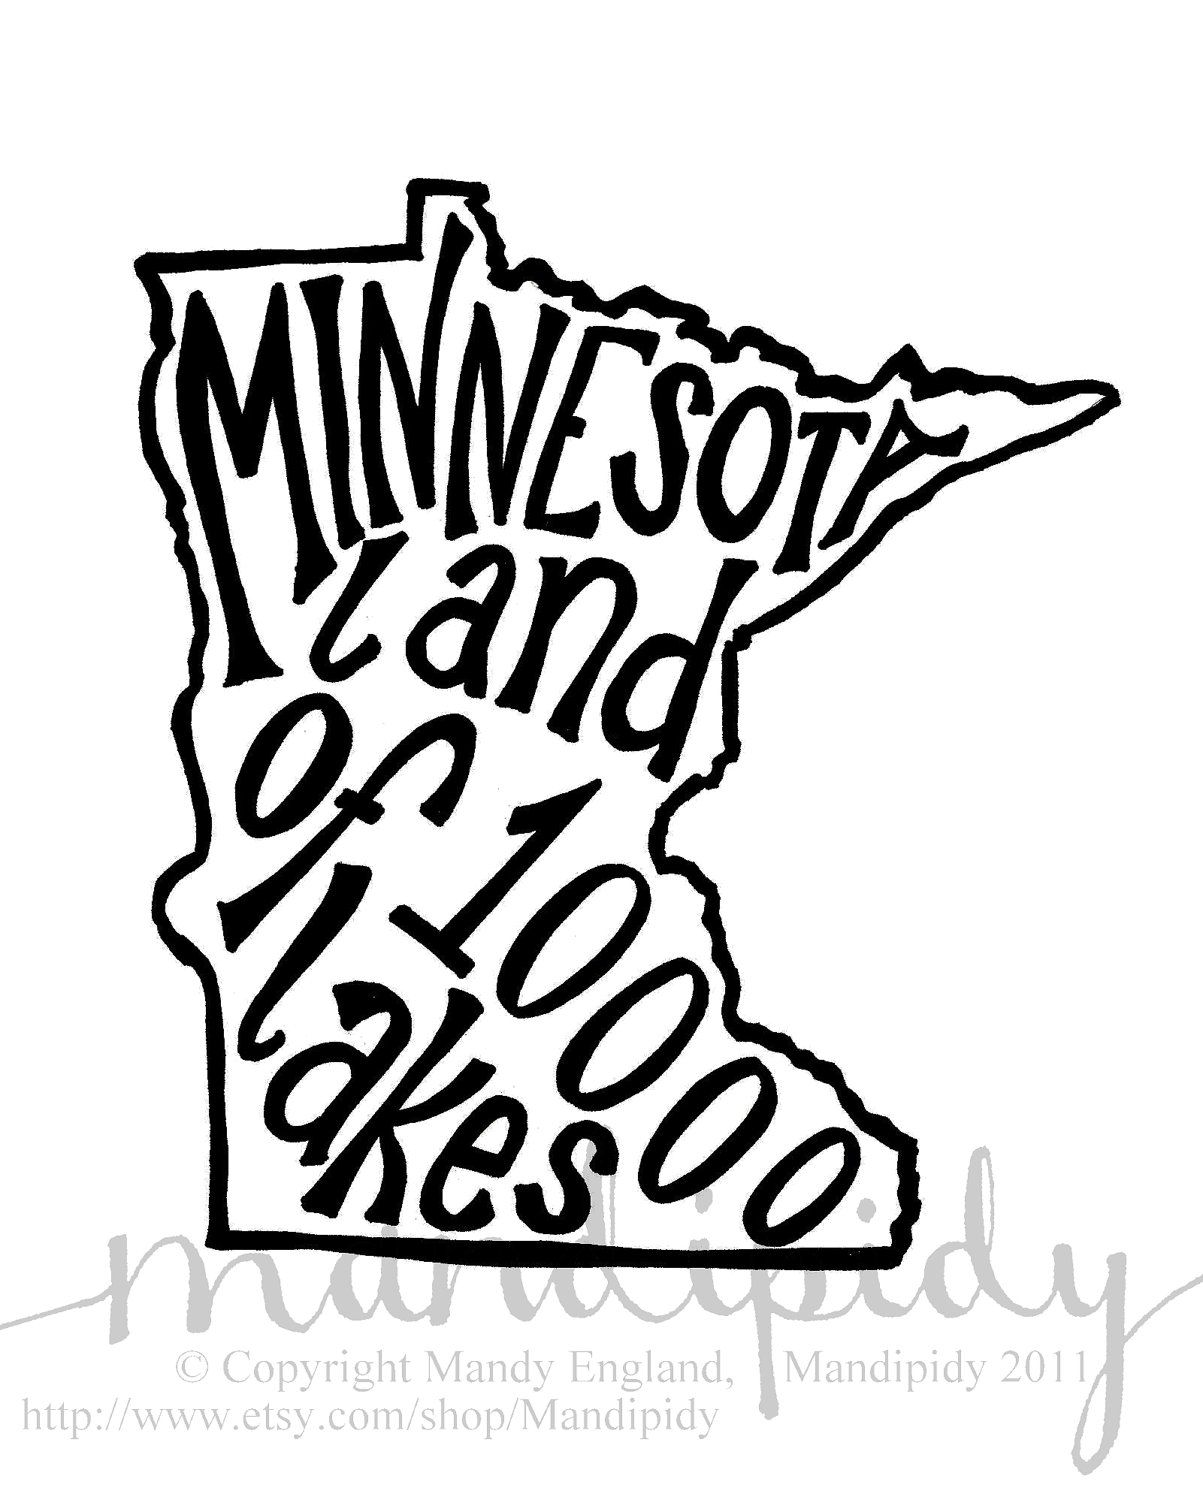 Minnesota Land of 10,000 Lakes.